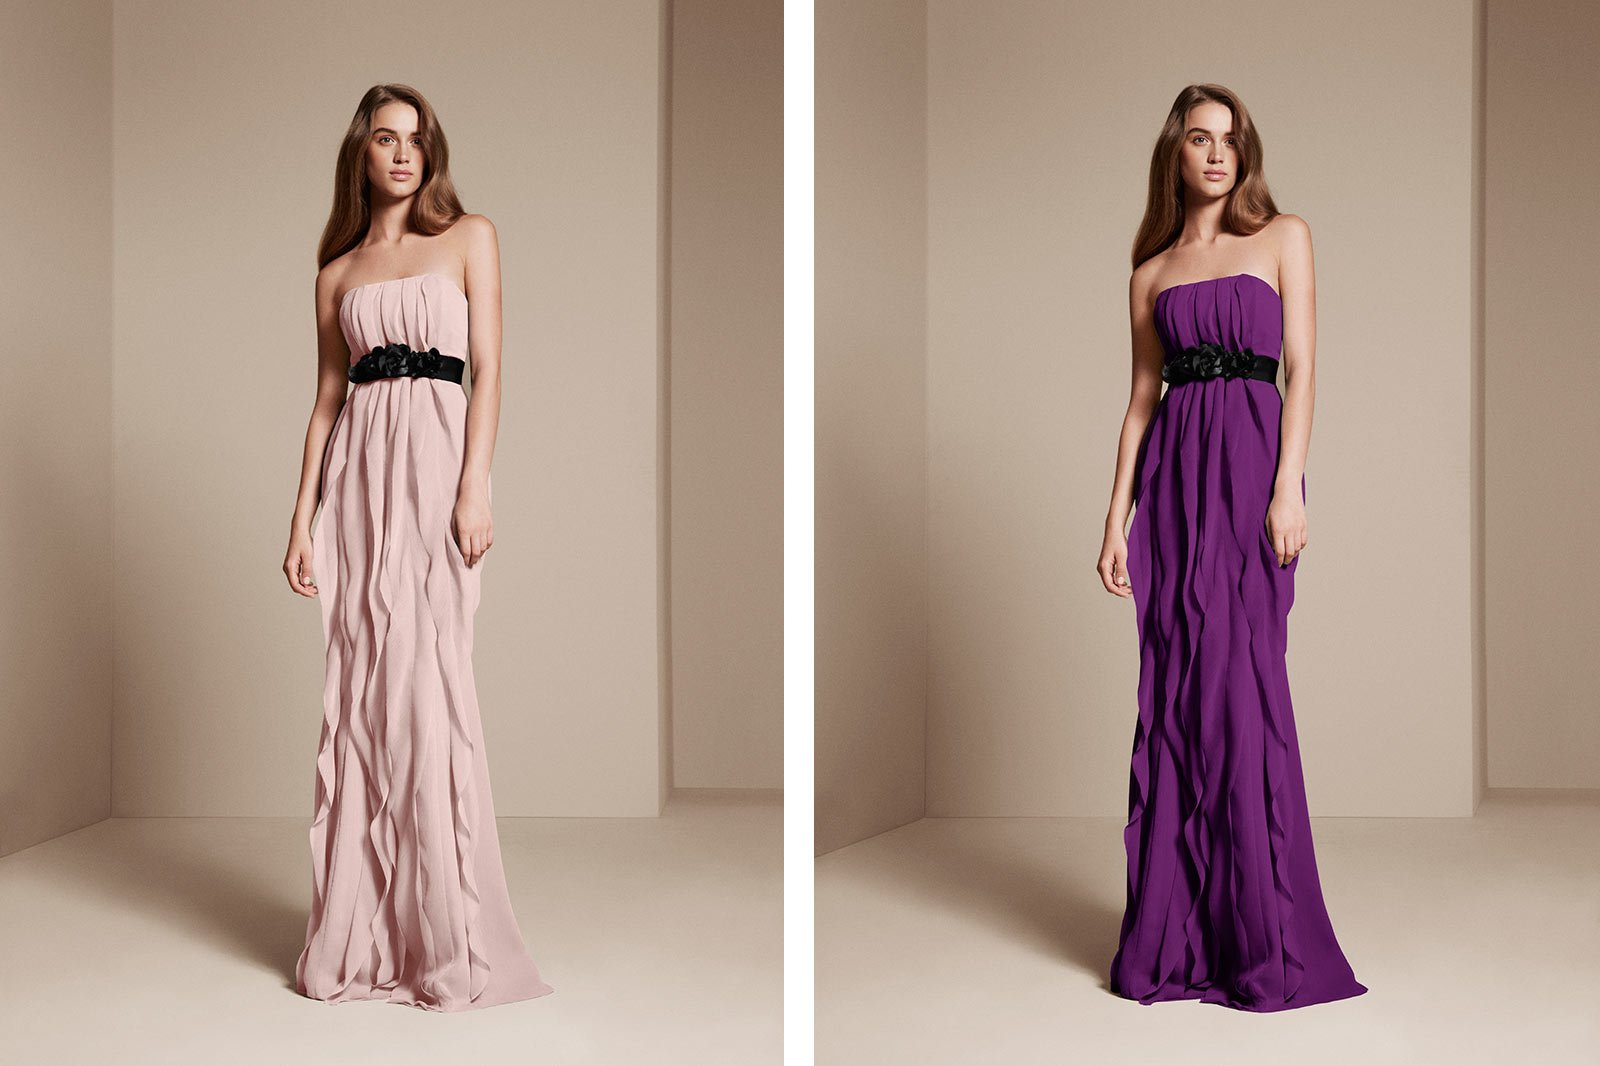 Colorways example - bridesmaid wearing bridesmaid dresses